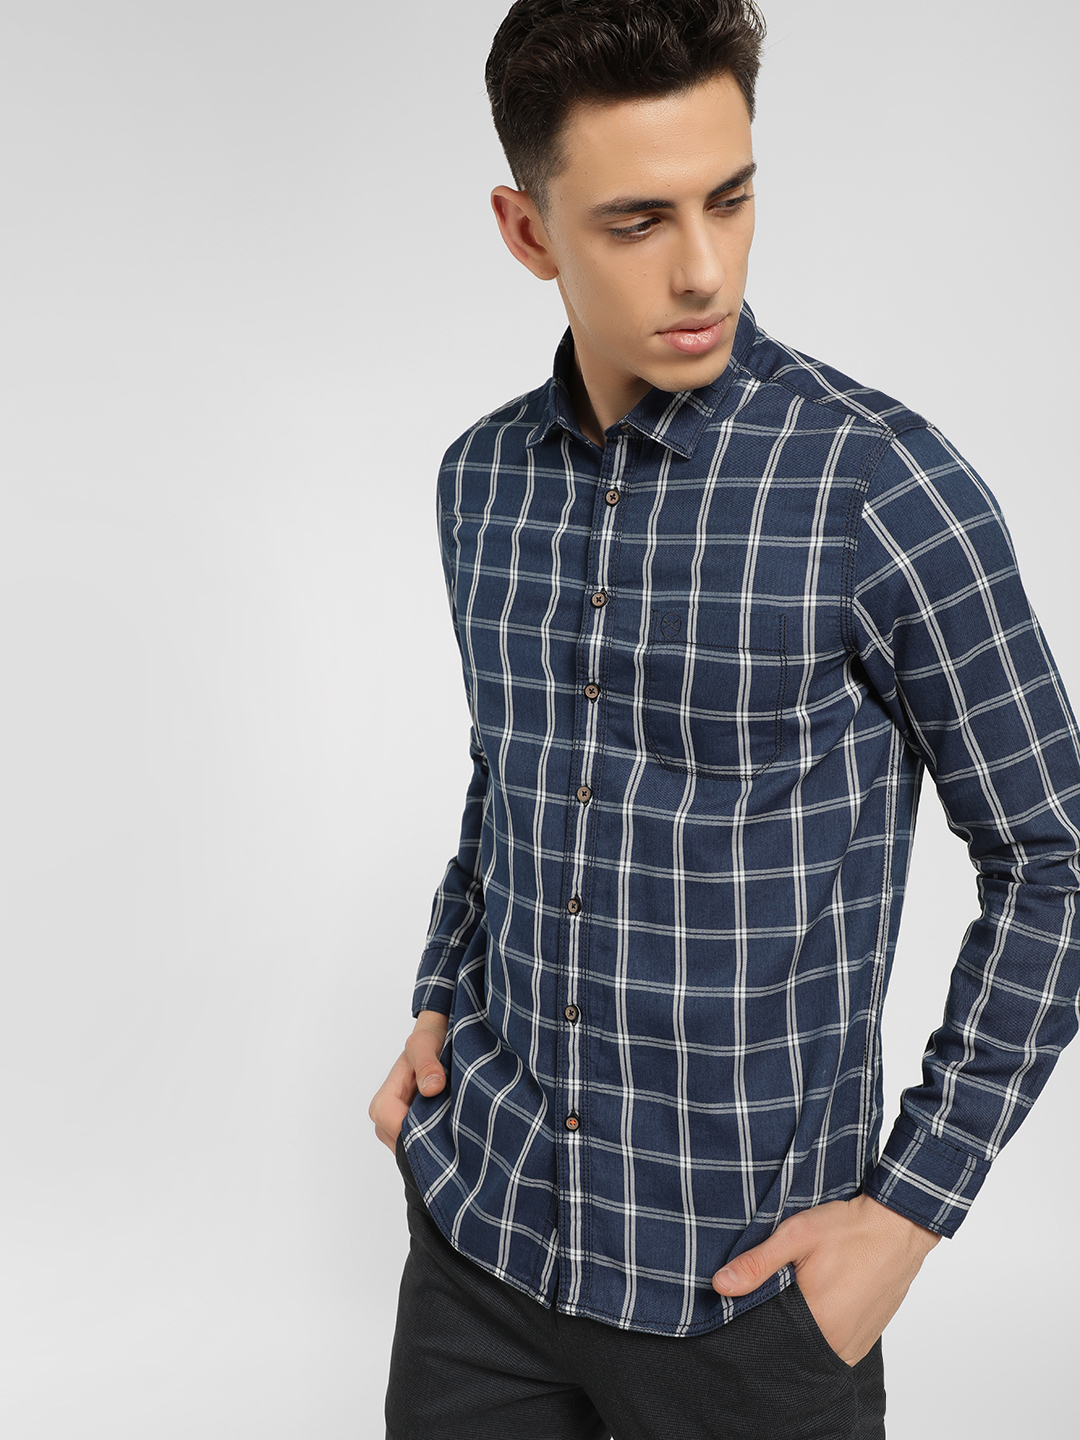 SCULLERS Multi Long Sleeve Windowpane Check Shirt 1